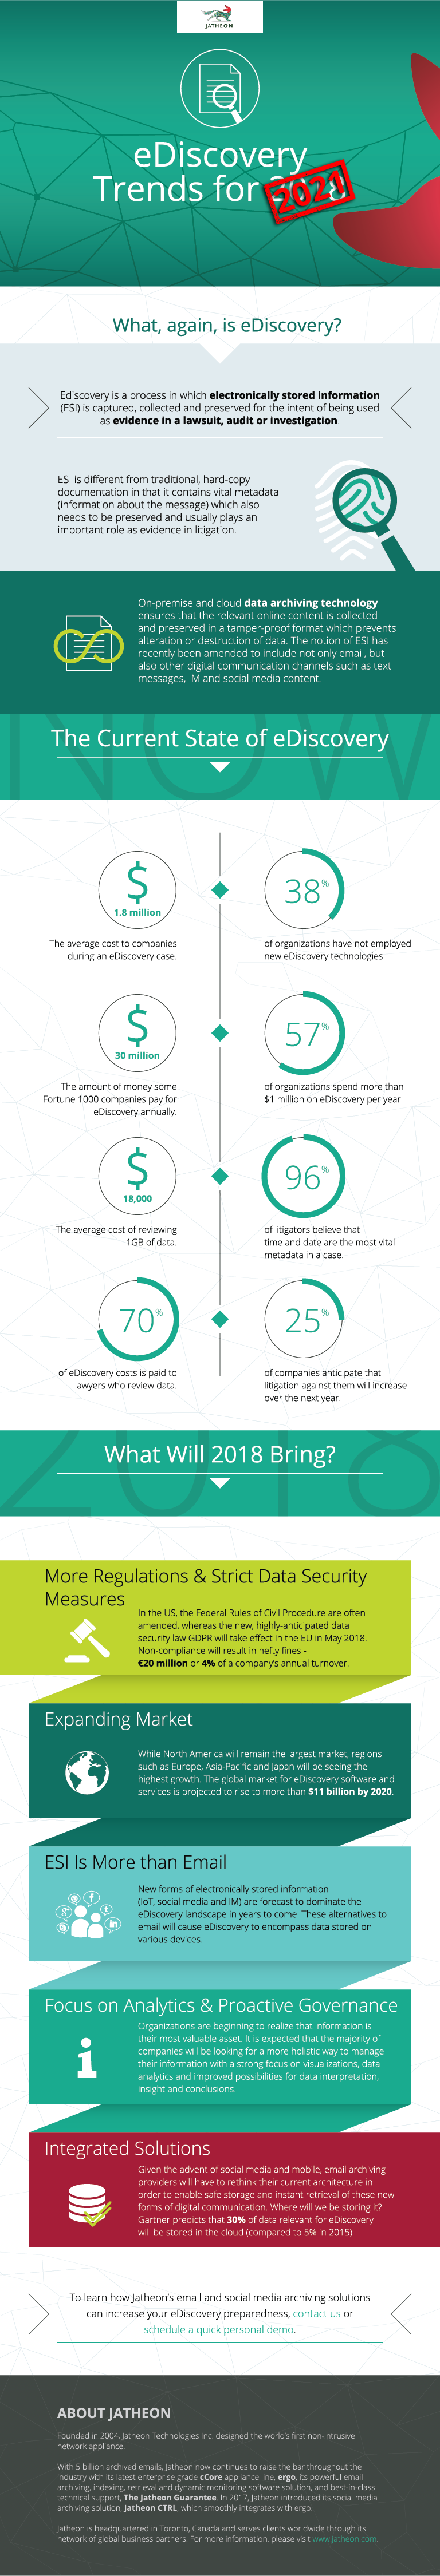 ediscovery trends 2018